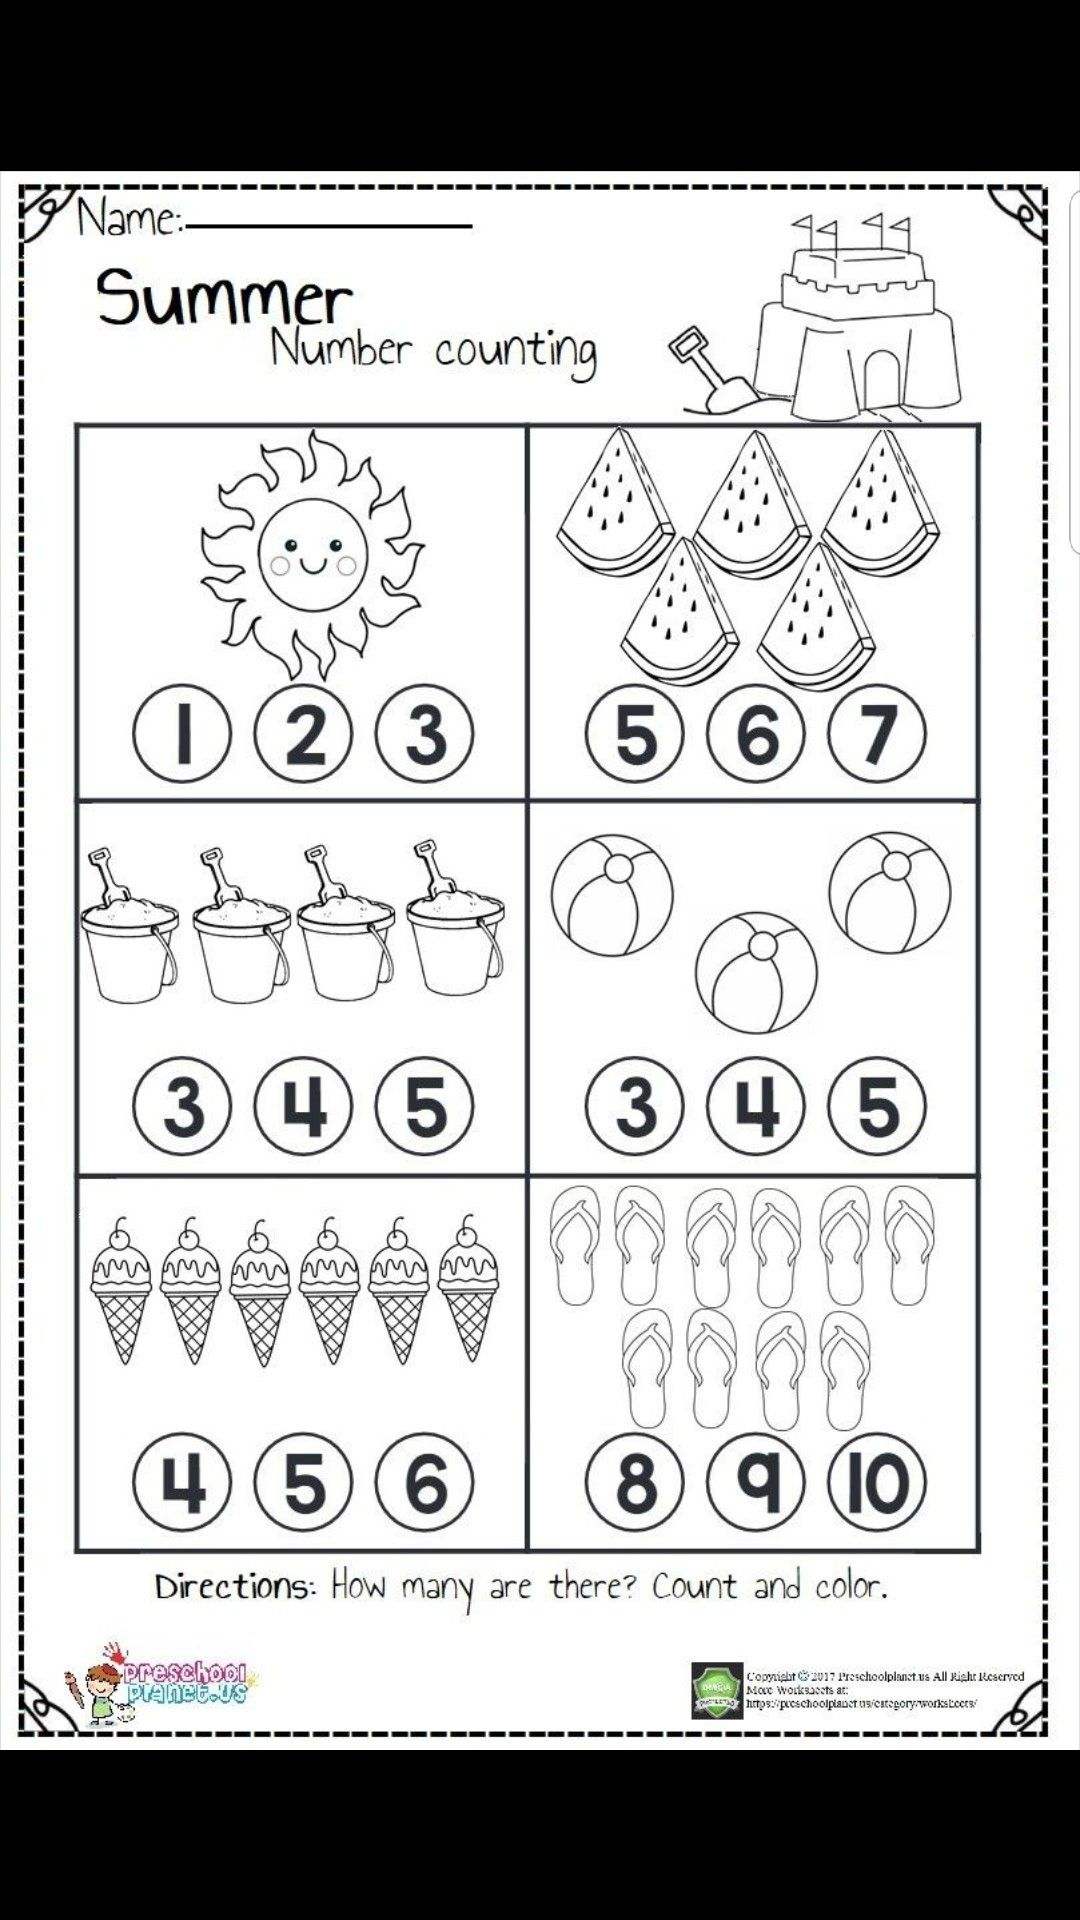 Pin By Fipit Mutmainah On Resim Kindergarten Math Worksheets Math Counting Worksheets Kindergarten Math Counting